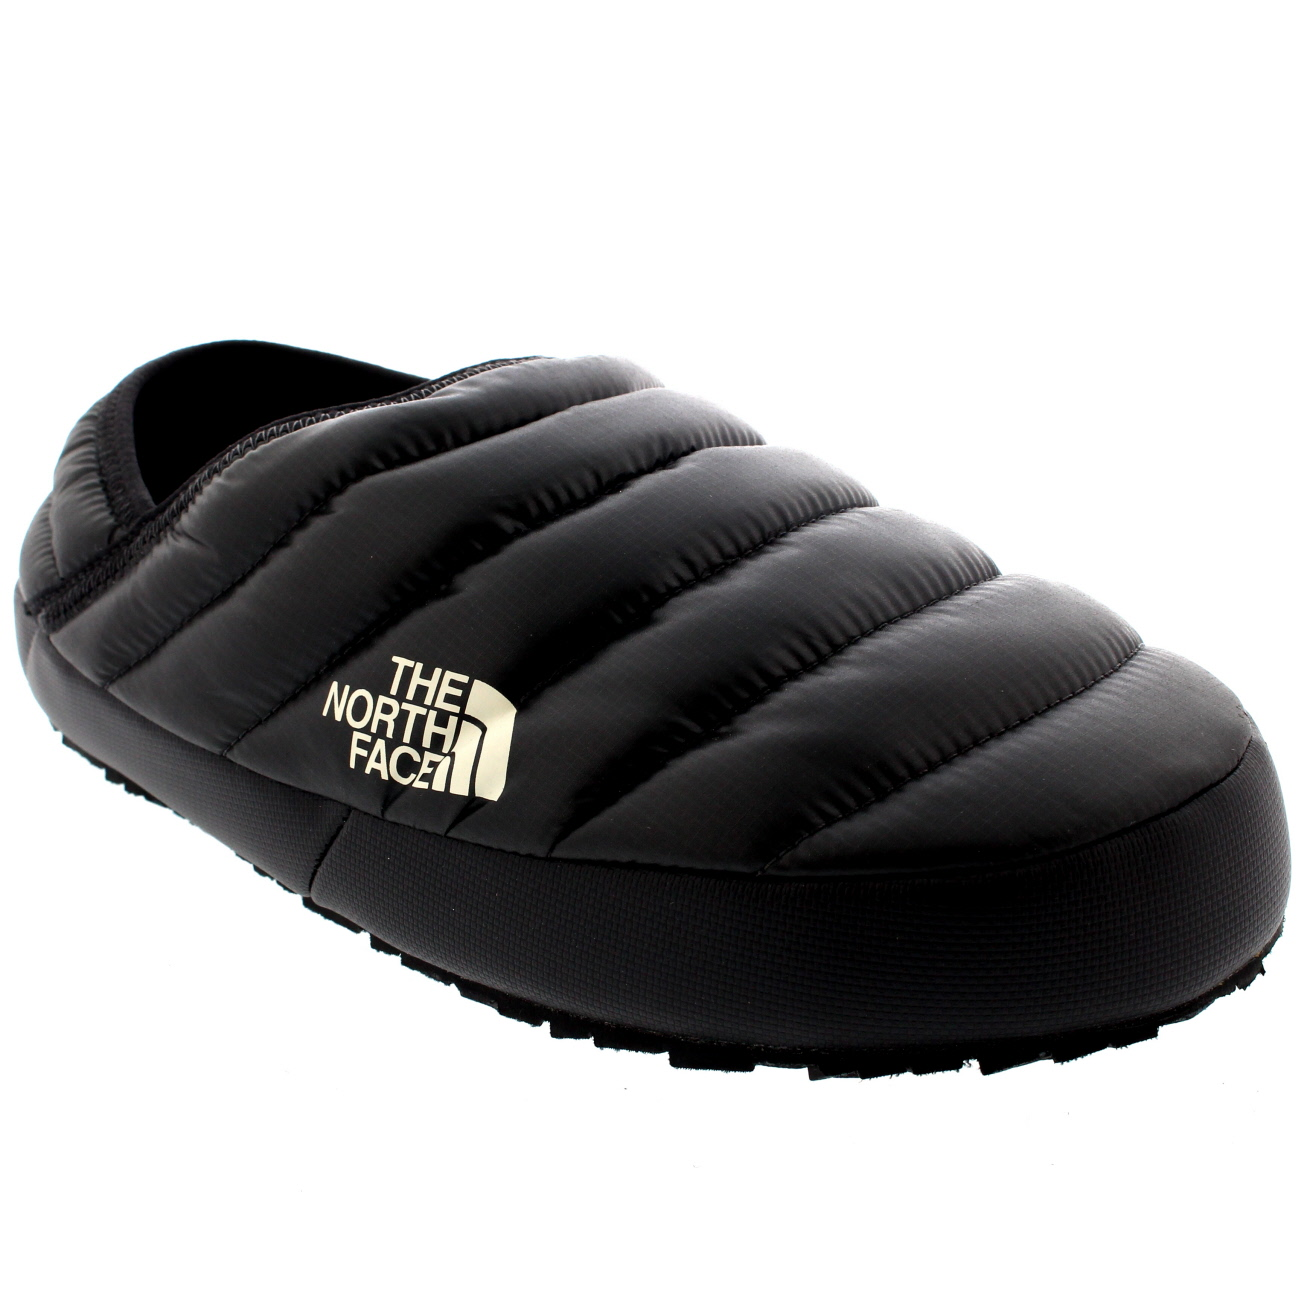 The North Face Traction Mule